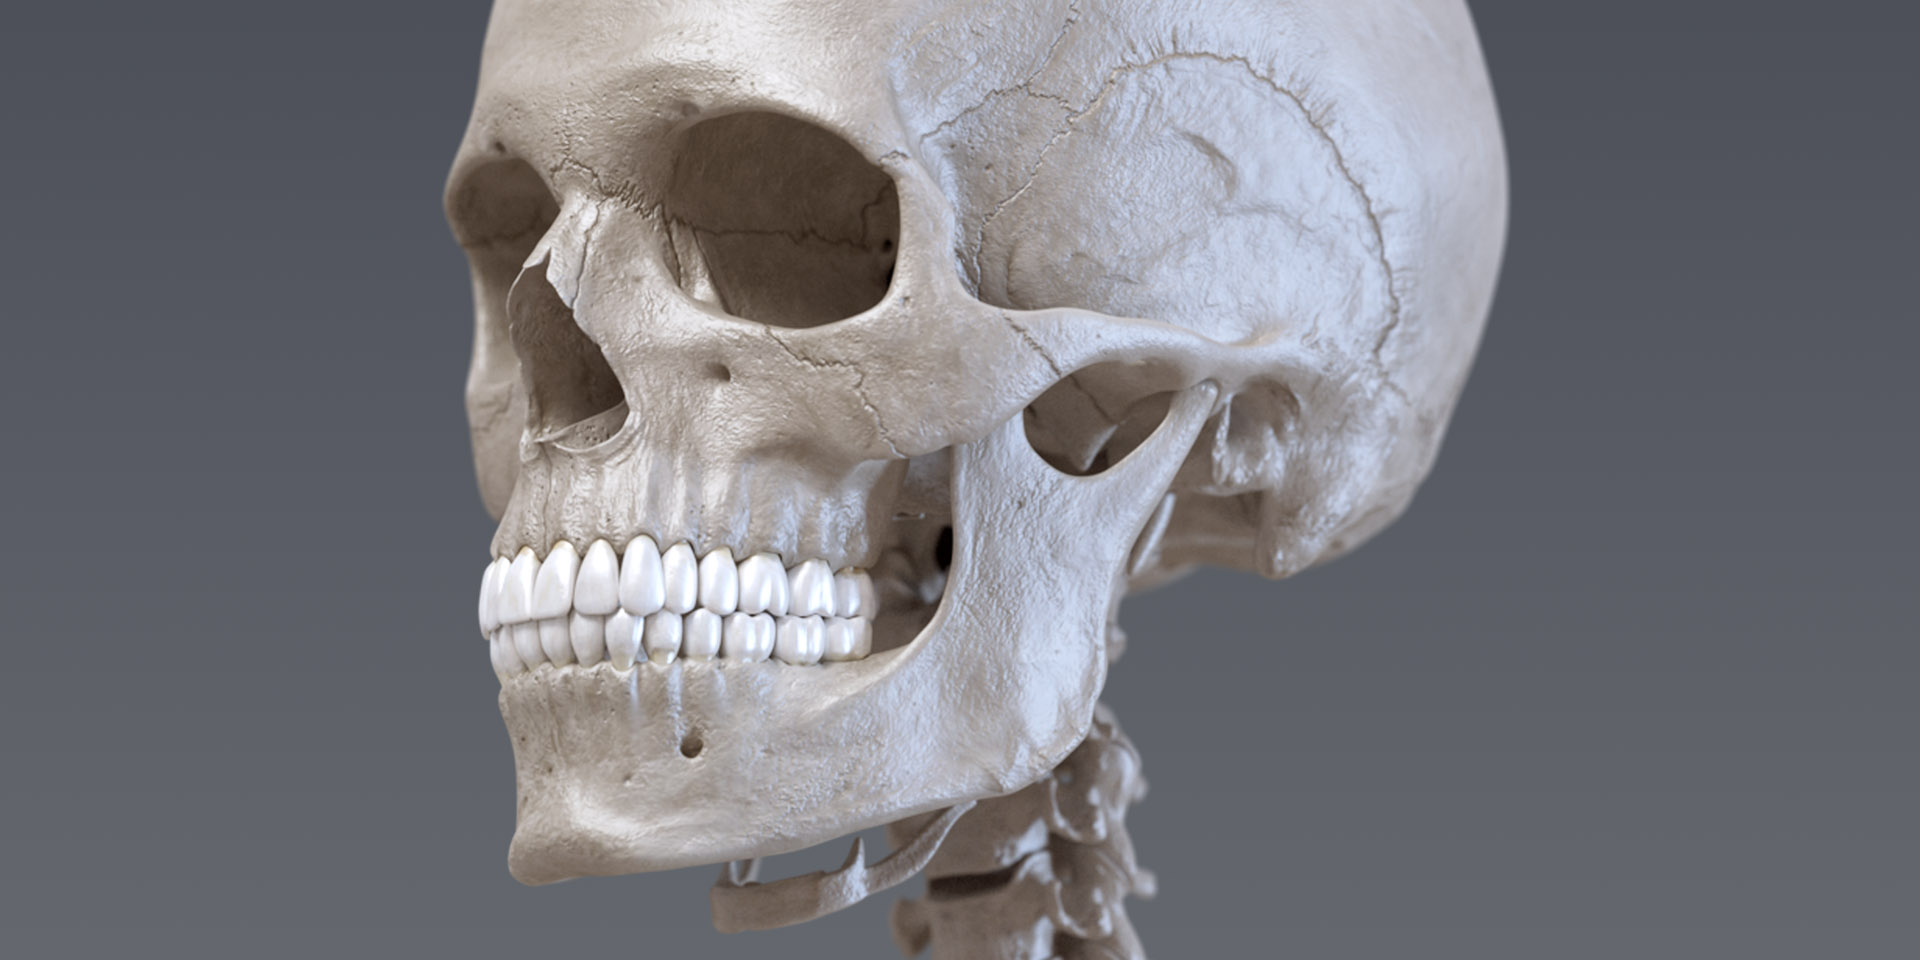 SKELETON - Anatomy 3D Atlas - Human Anatomy Apps